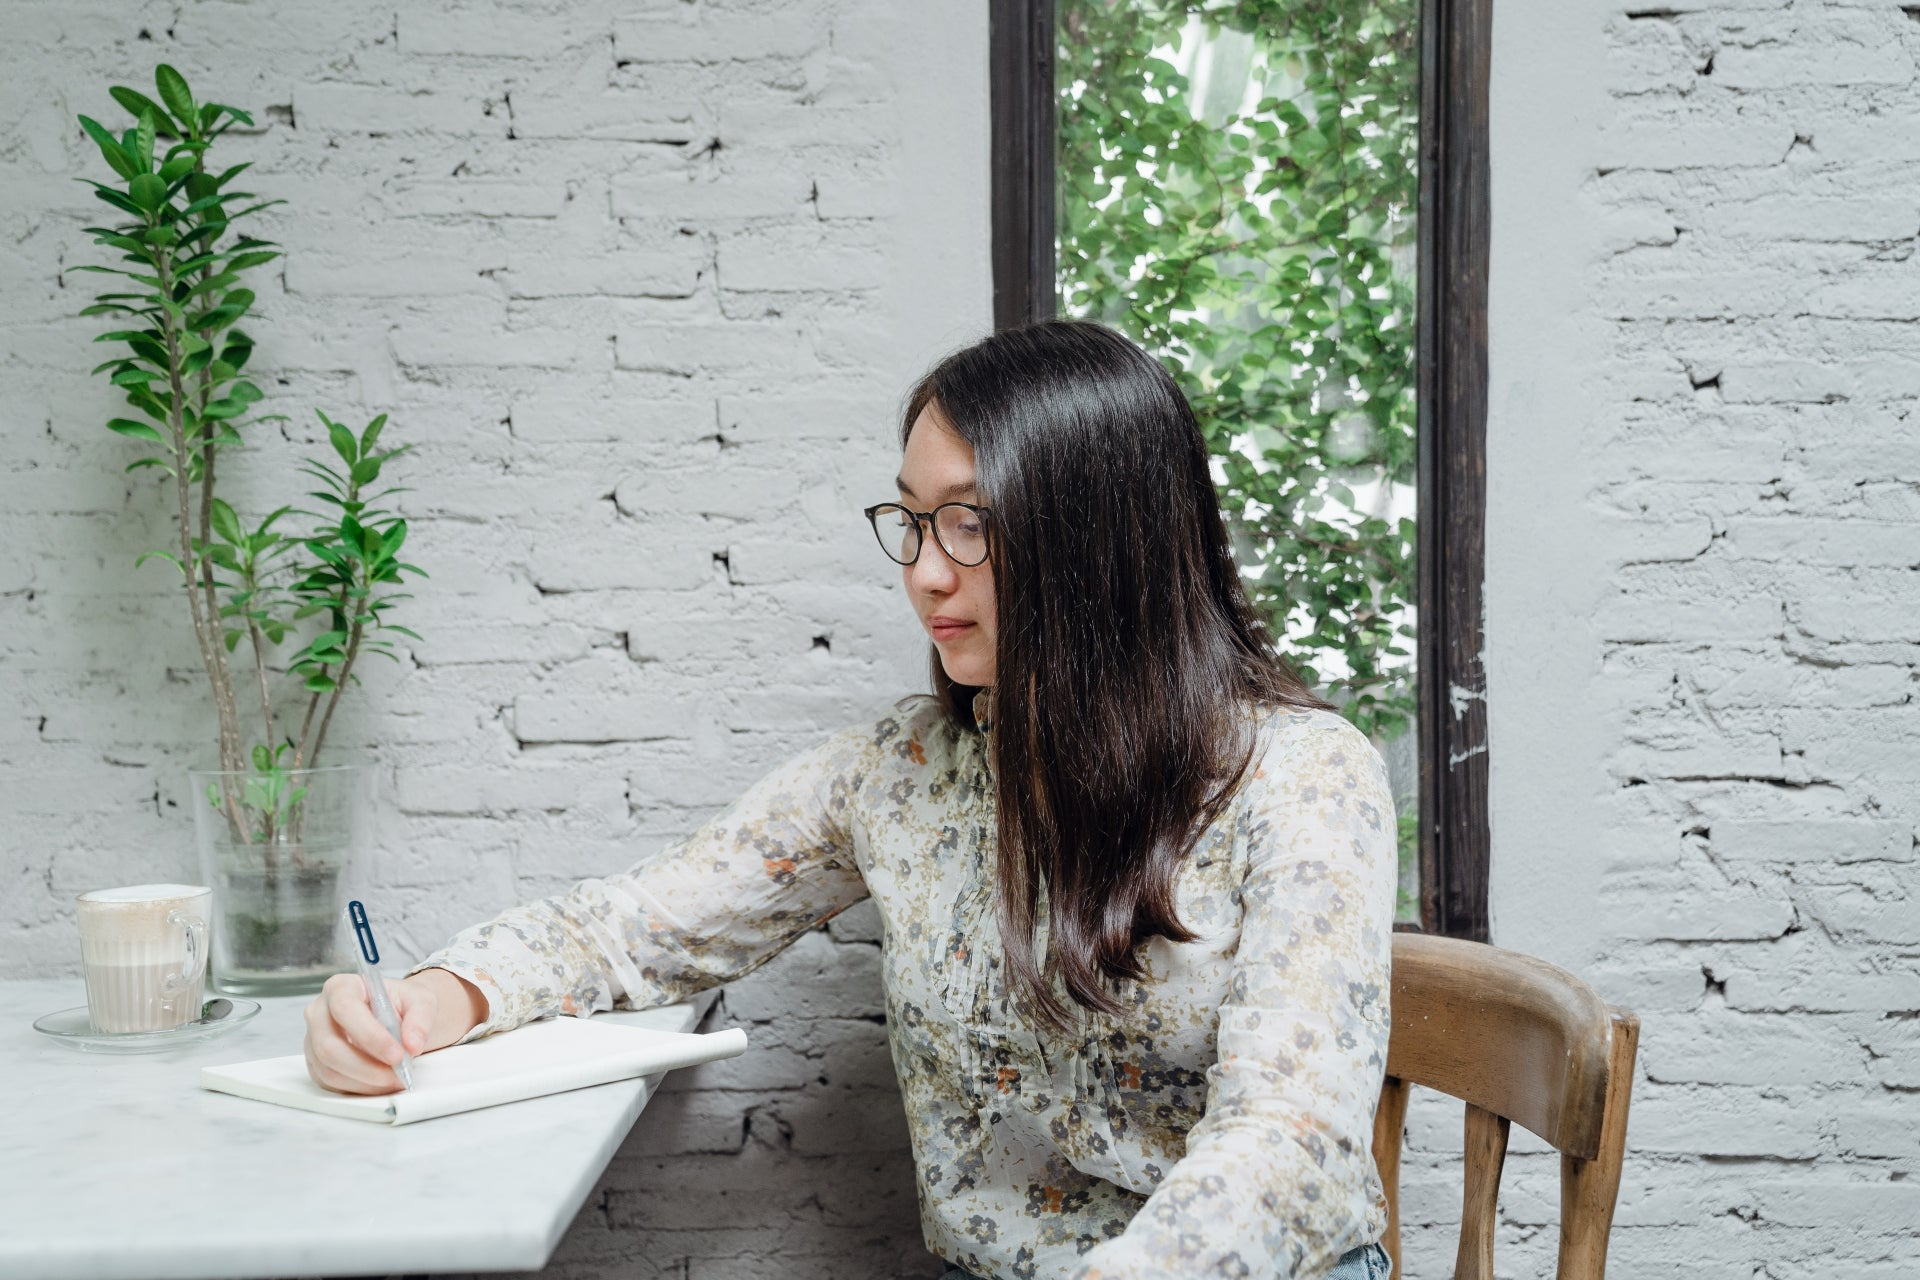 A young Asian woman sits at a tabletop writing in a notebook about how to budget for insurance.